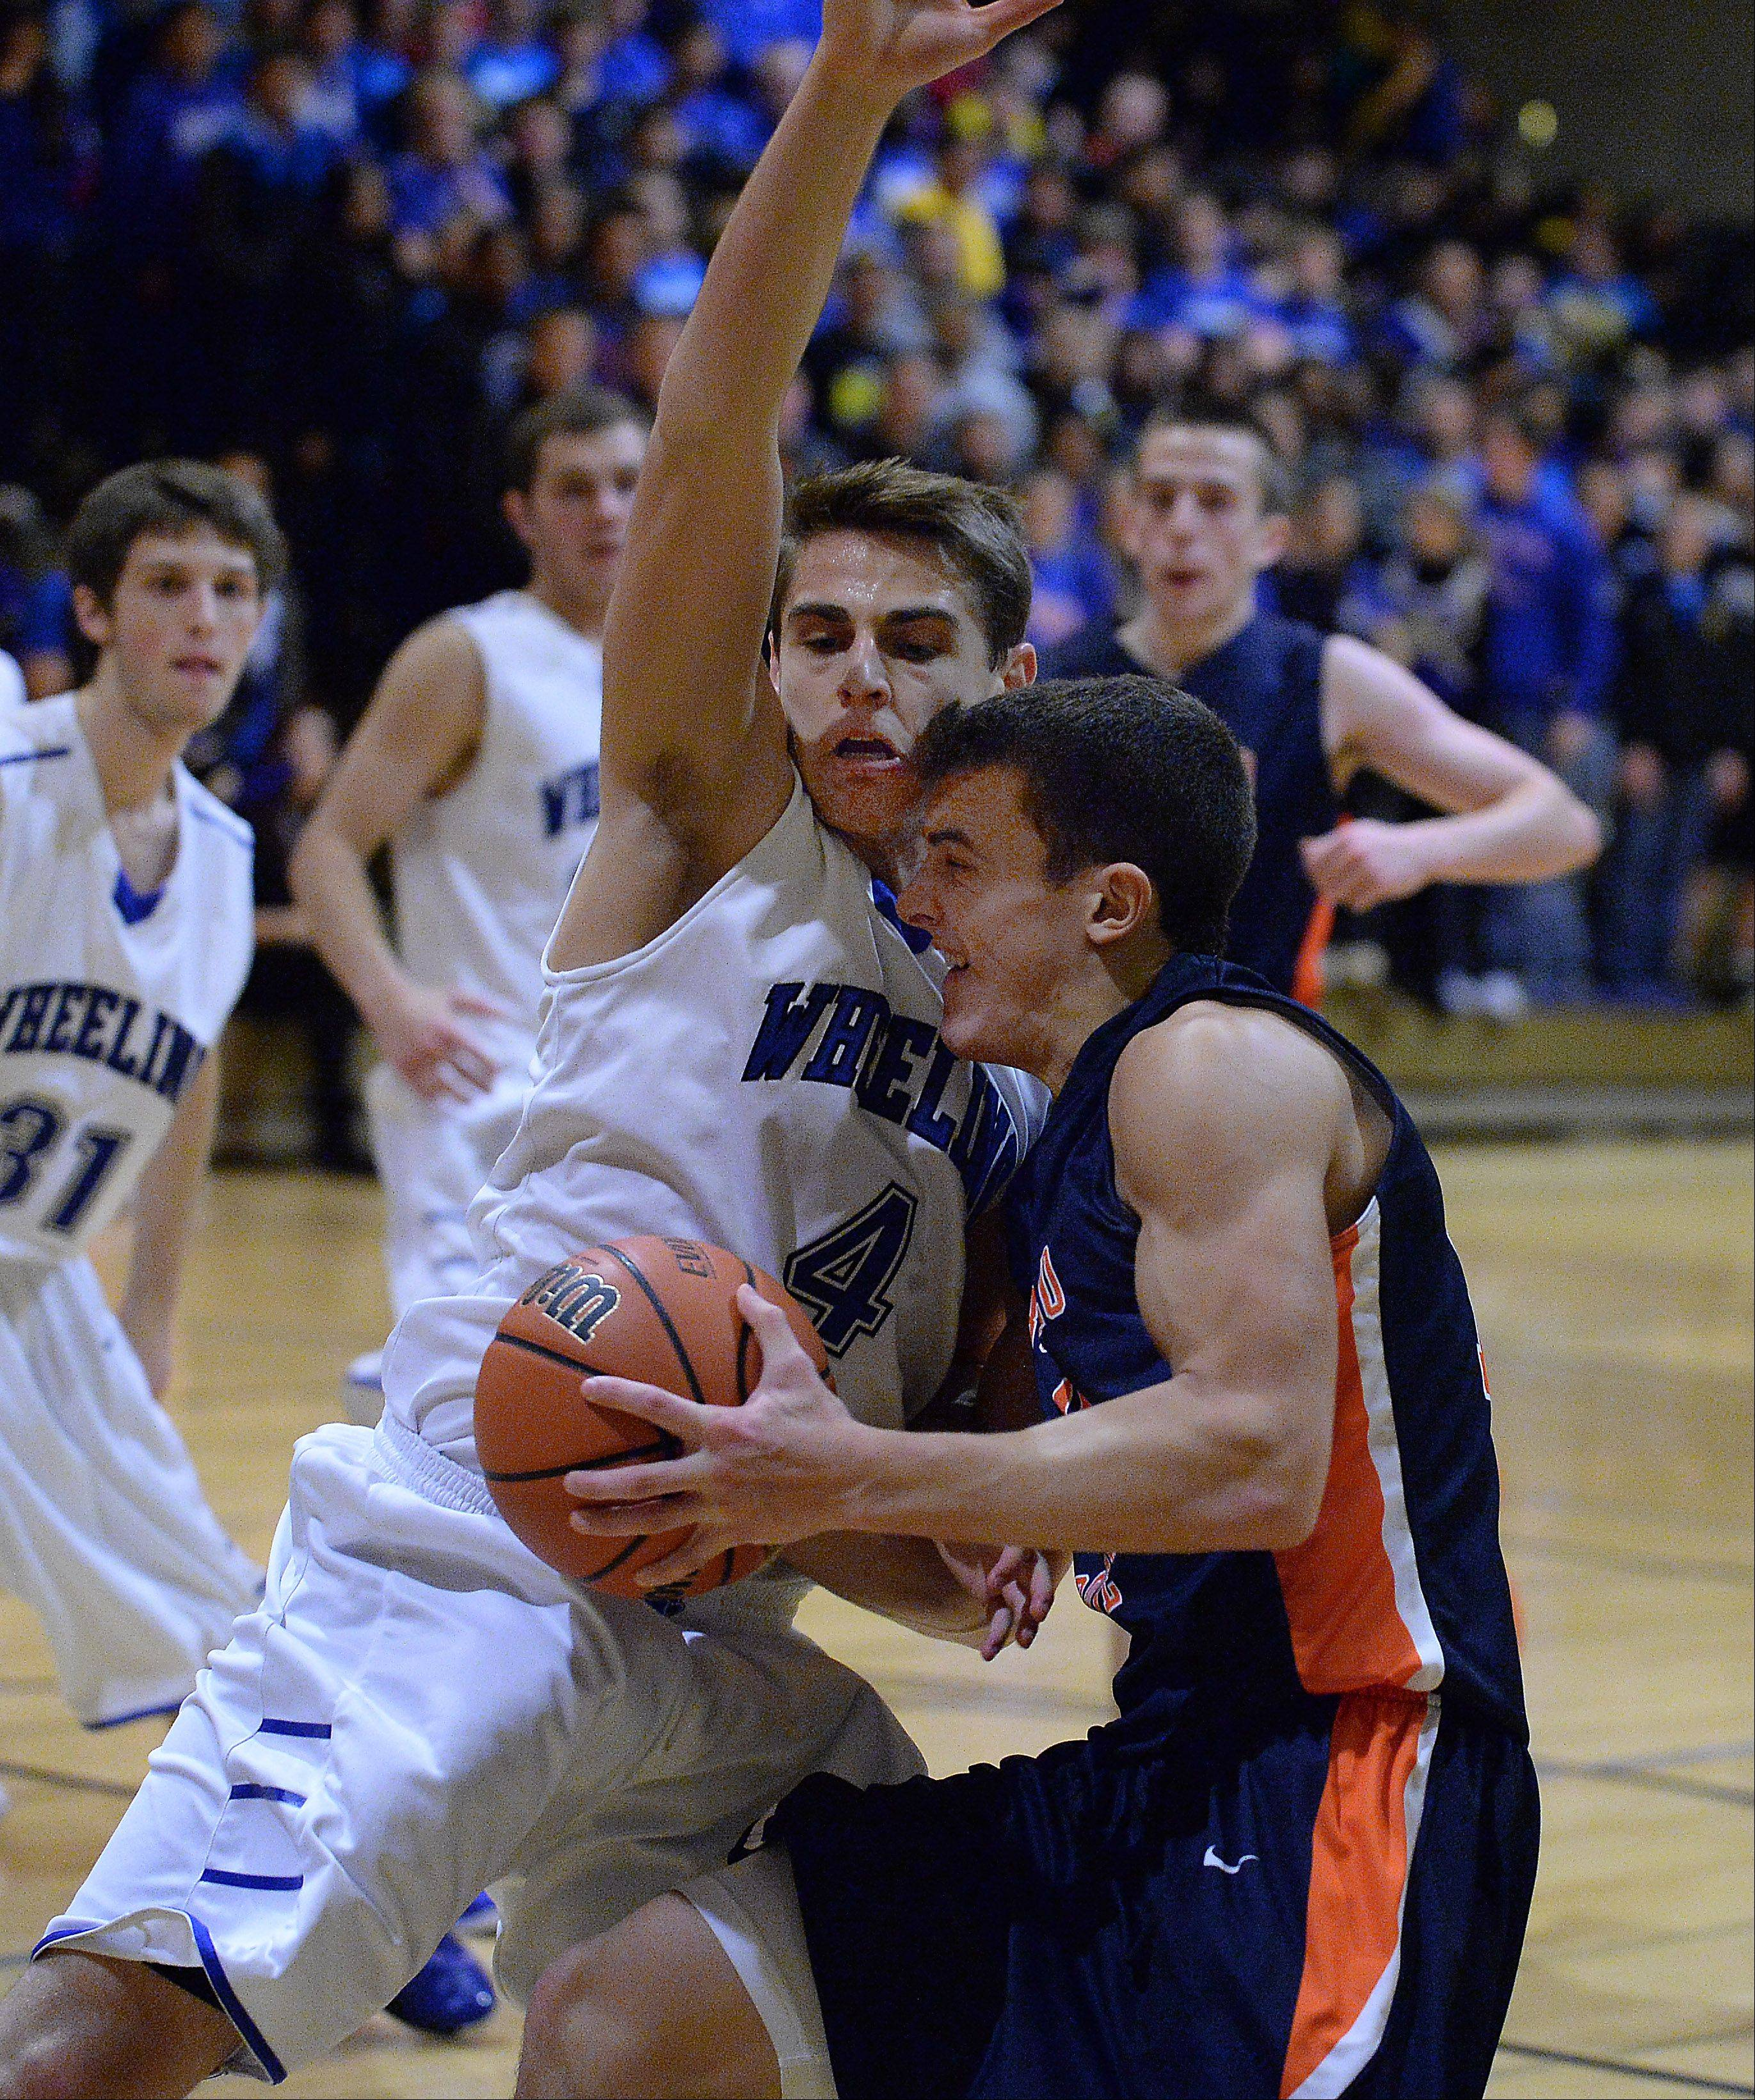 Wheeling's Jeremy Stephani blocks the path of Buffalo Grove's Andrew Apel in the second half at Wheeling on Friday.